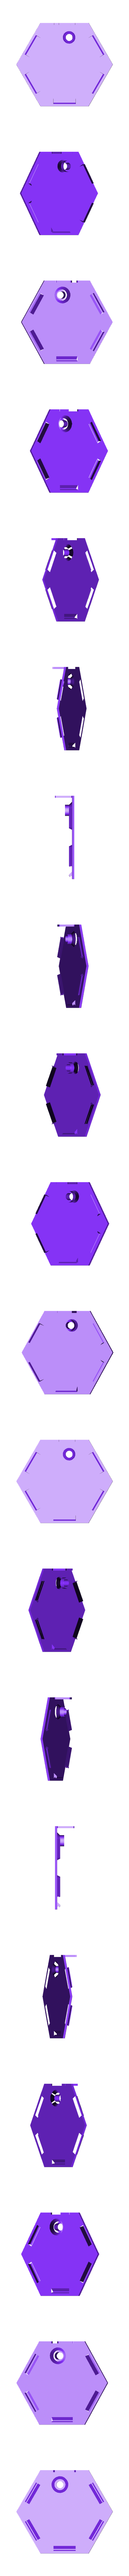 itsy-cover.stl Download free STL file ItsyBitsy Case (M0, M4 and nRF52840) • 3D print object, Adafruit